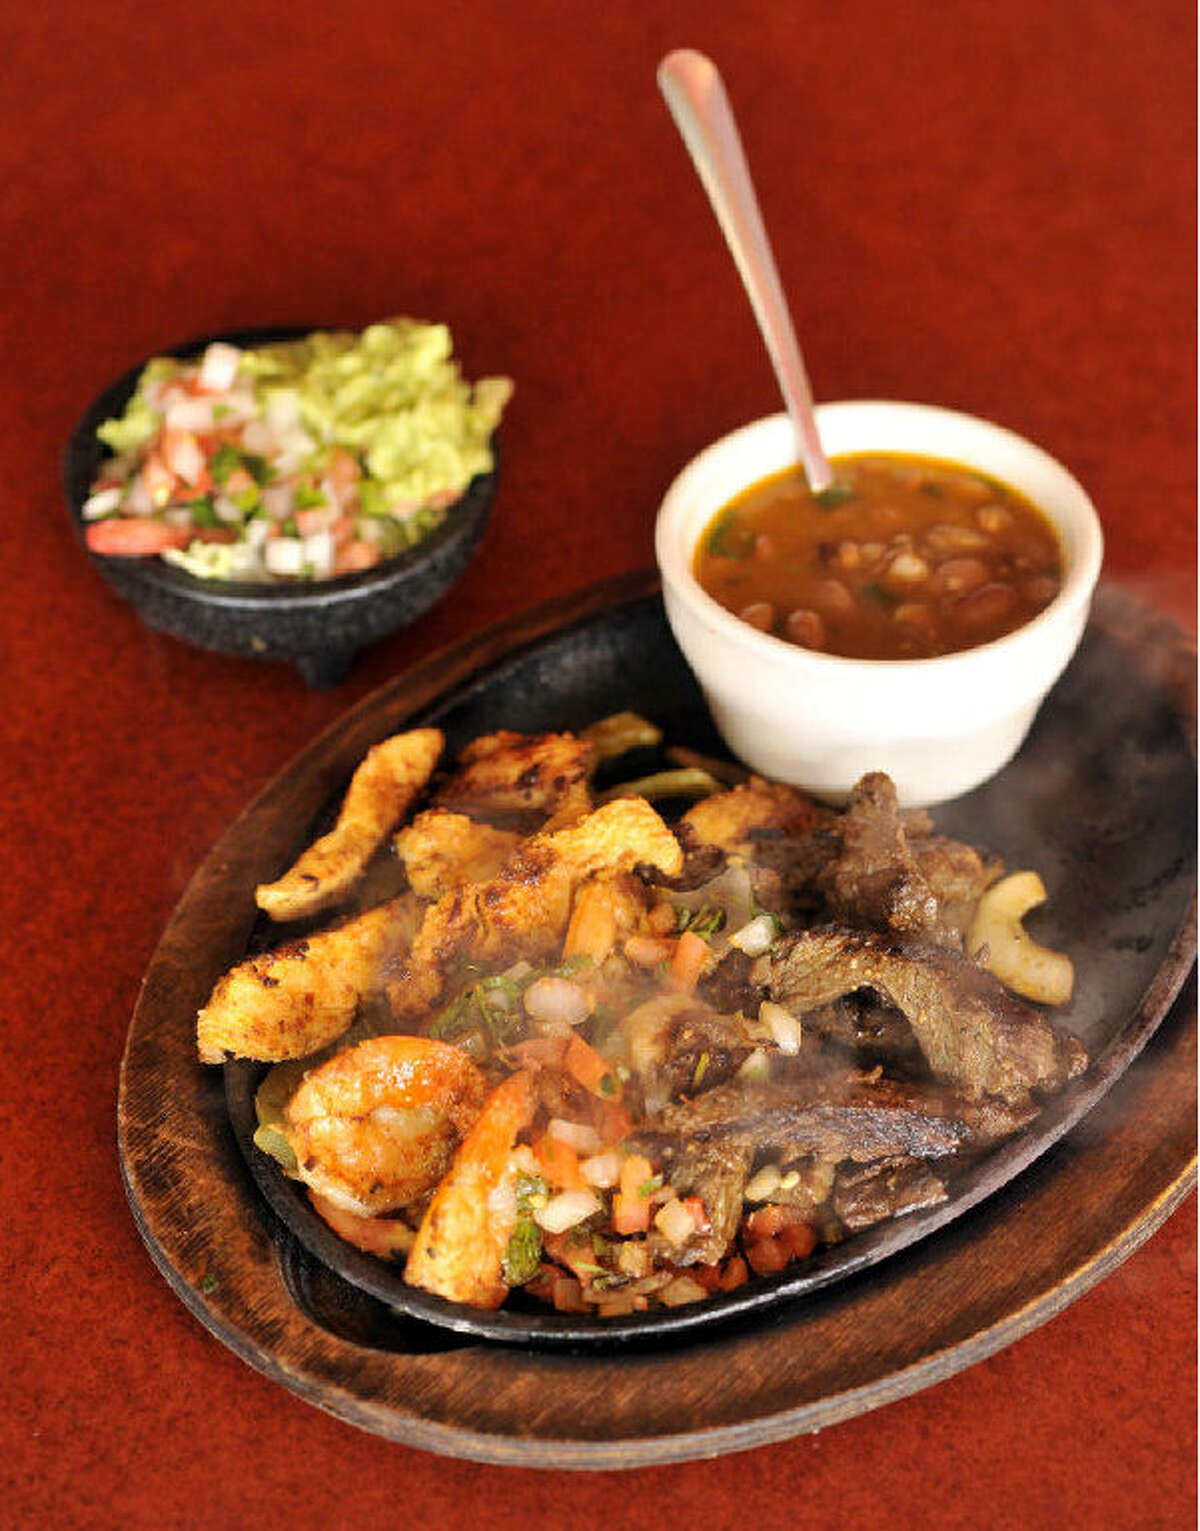 The savory Fiesta Special at Rosario's includes grilled shrimp and either beef or chicken fajitas.